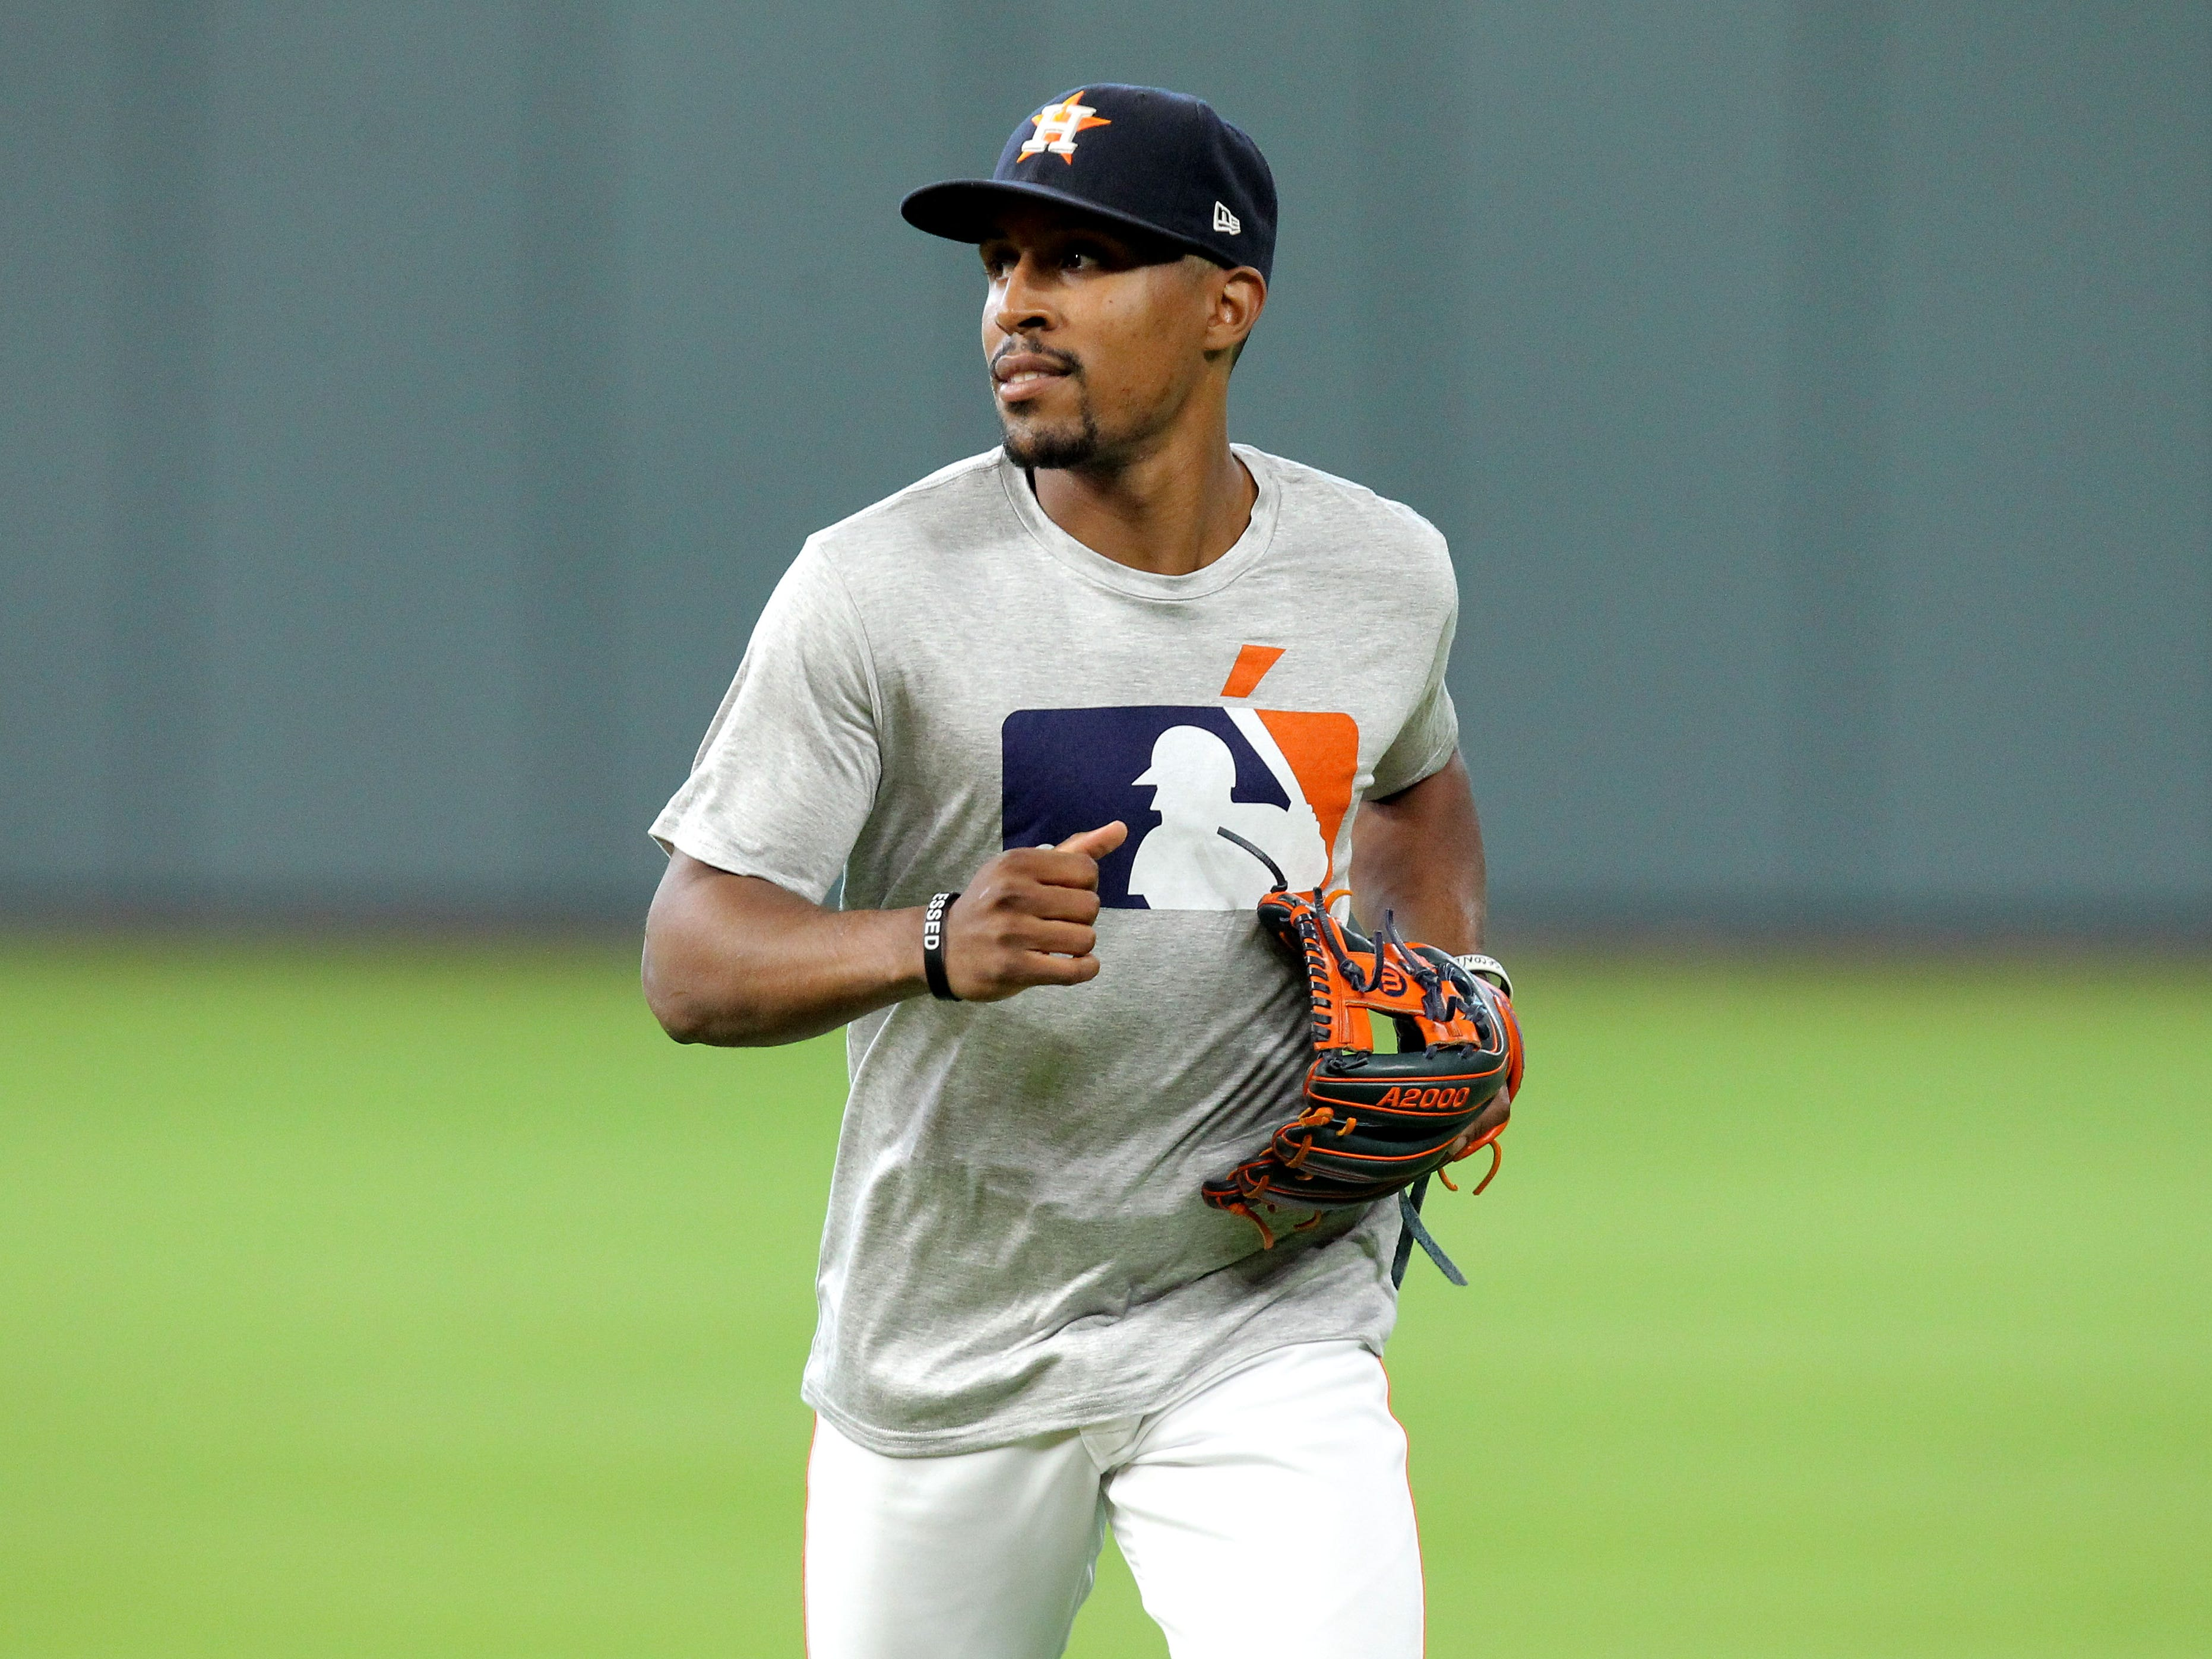 Sep 15, 2018; Houston, TX, USA; Houston Astros second baseman Tony Kemp (18) prior to the game against the Arizona Diamondbacks at Minute Maid Park. Mandatory Credit: Erik Williams-USA TODAY Sports